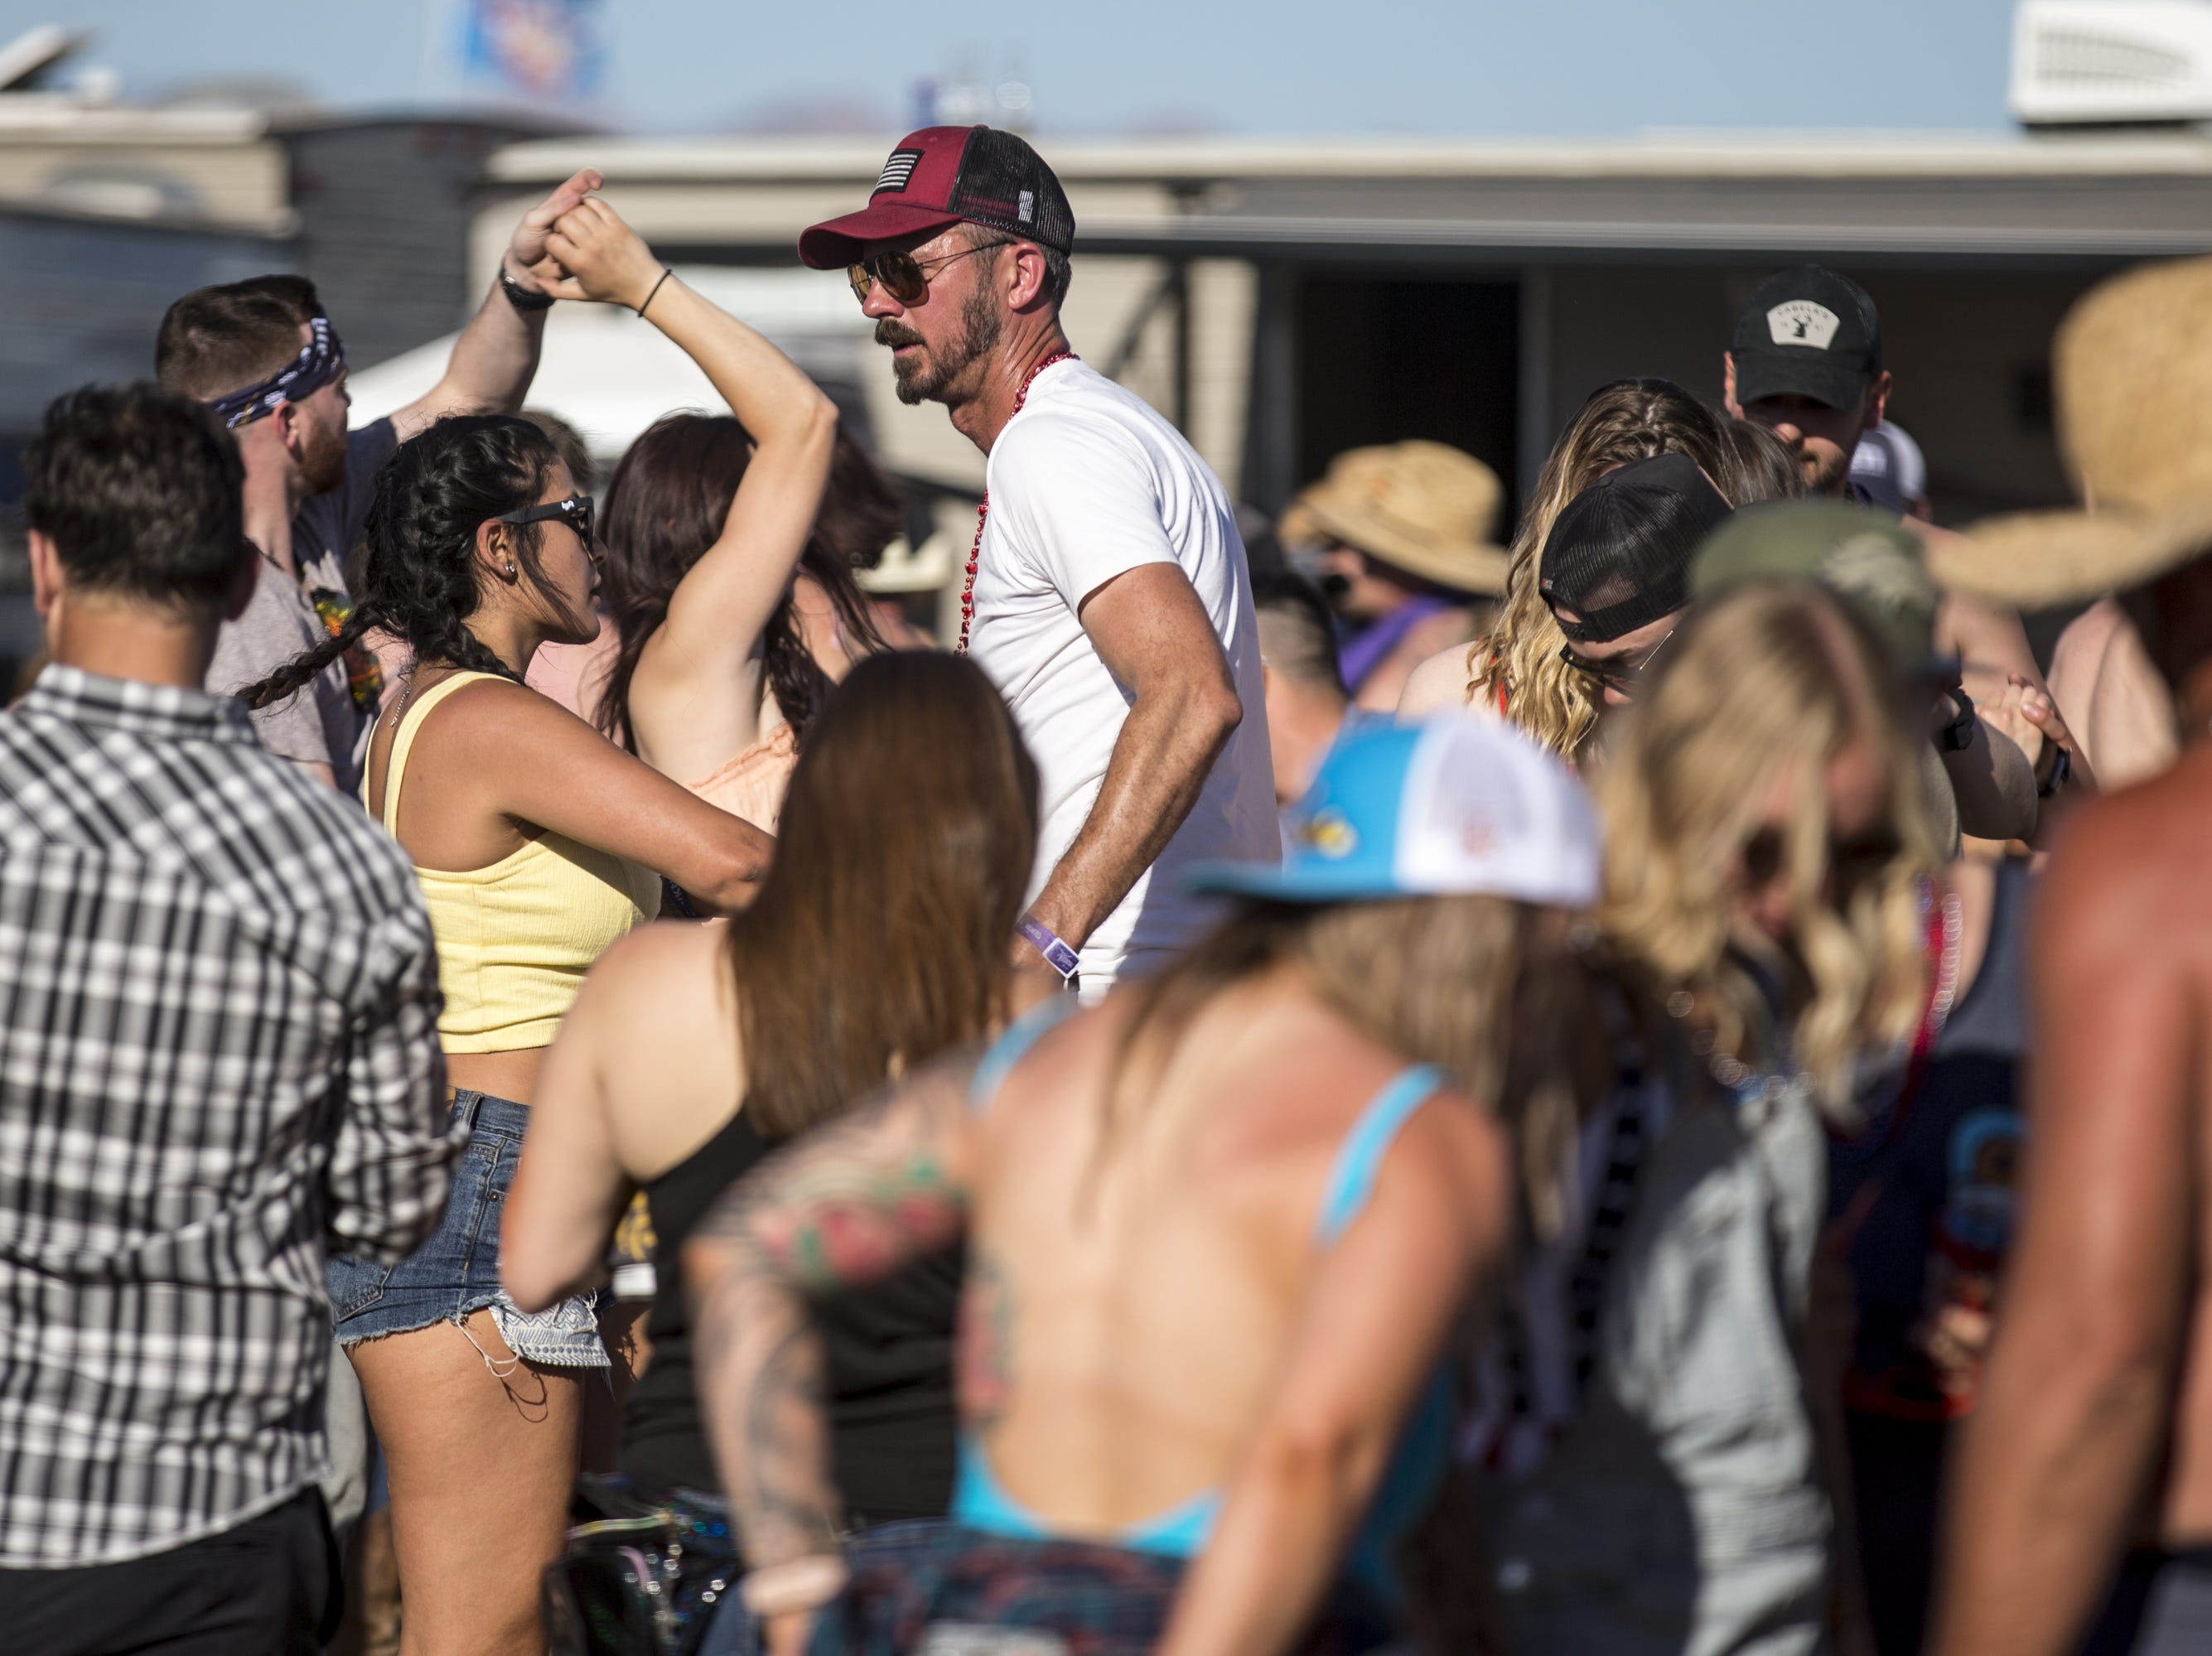 Festivalgoers dance at the Crazy Coyote campground on Saturday, Apr. 13, 2019, during Day 3 of Country Thunder Arizona in Florence, Ariz.